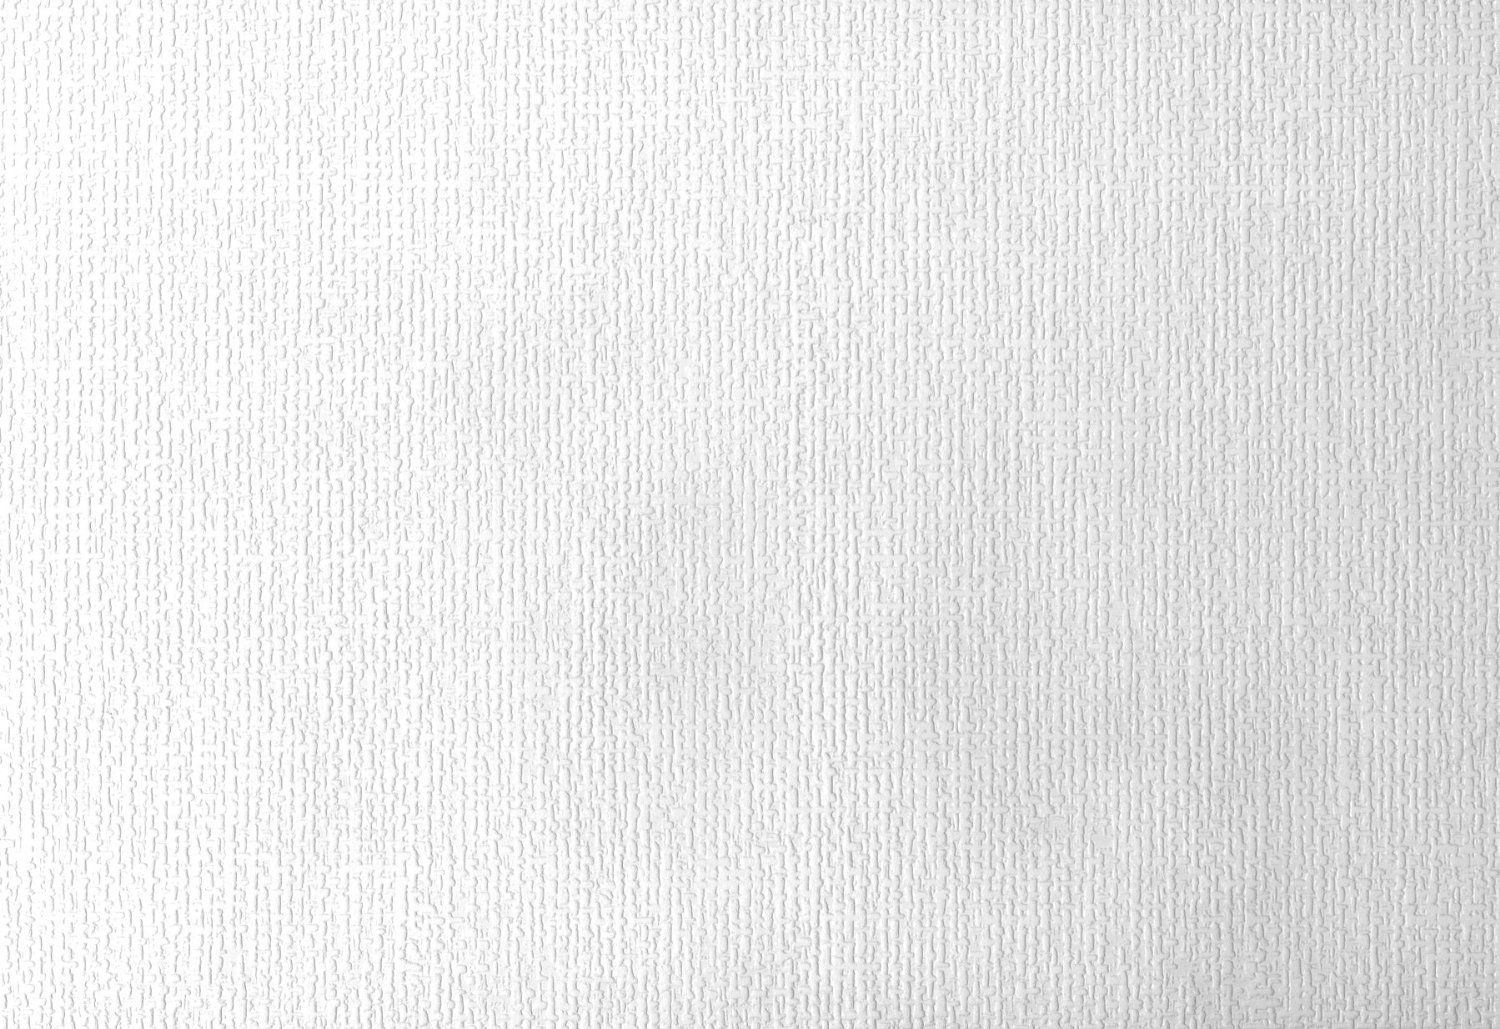 Linen Texture Wallpaper images in Collection Page